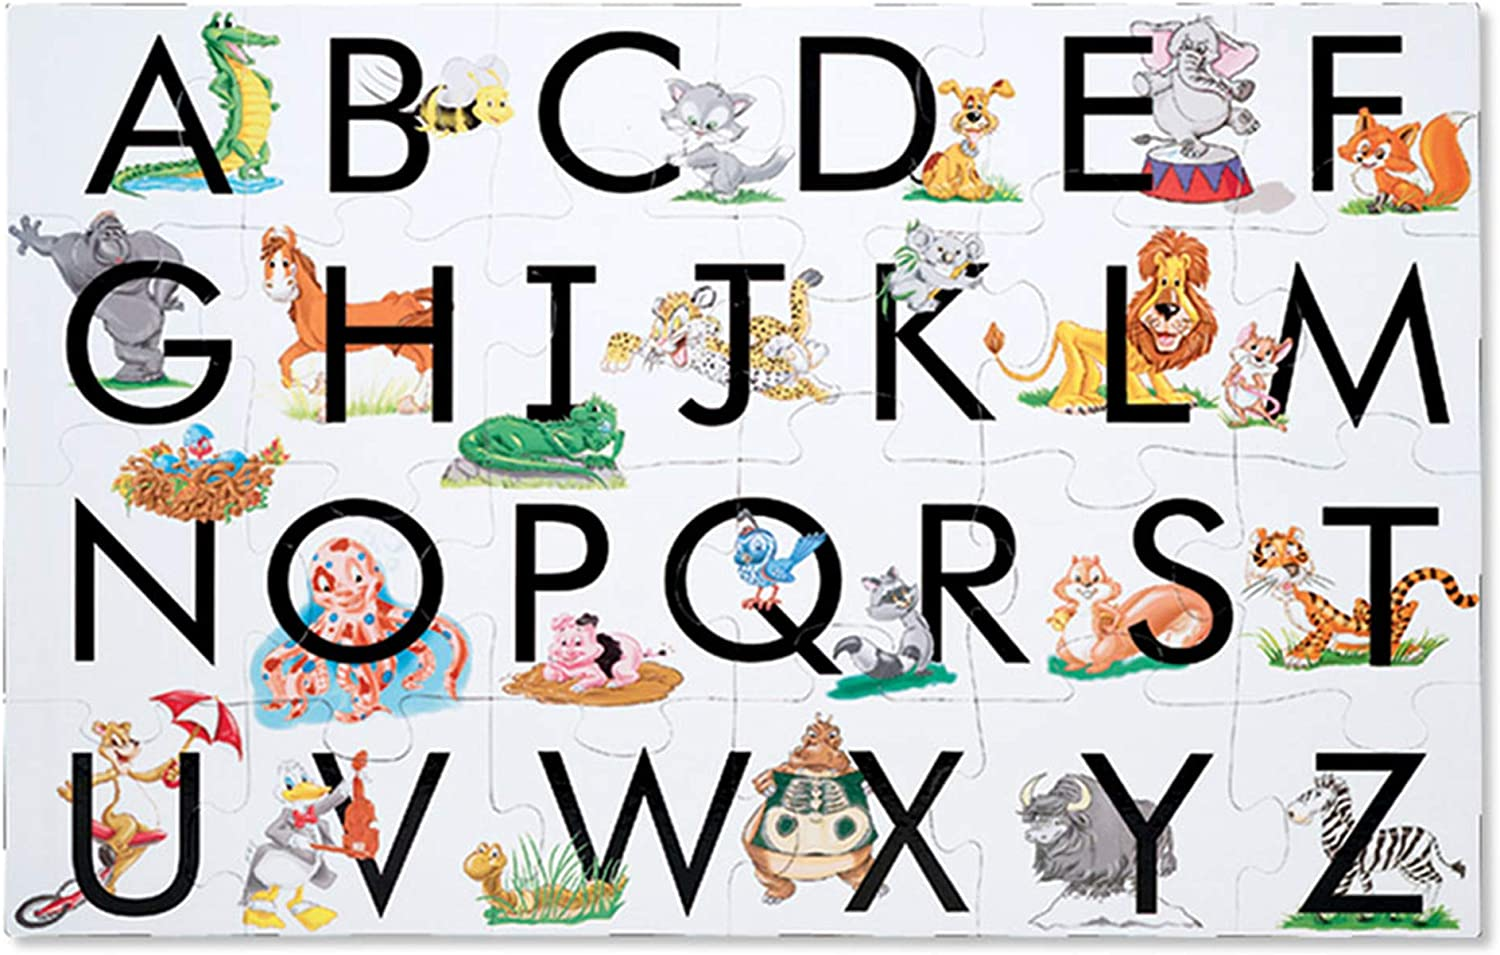 B0006GVB60 Melissa & Doug ABC Learn the Alphabet Floor Puzzle (Easy-Clean Surface, Promotes Hand-Eye Coordination, 24 Pieces, 24 L x 36 W, Great Gift for Girls and Boys - Best for 3, 4, 5, and 6 Year Olds) 71bFK2B6kC2L